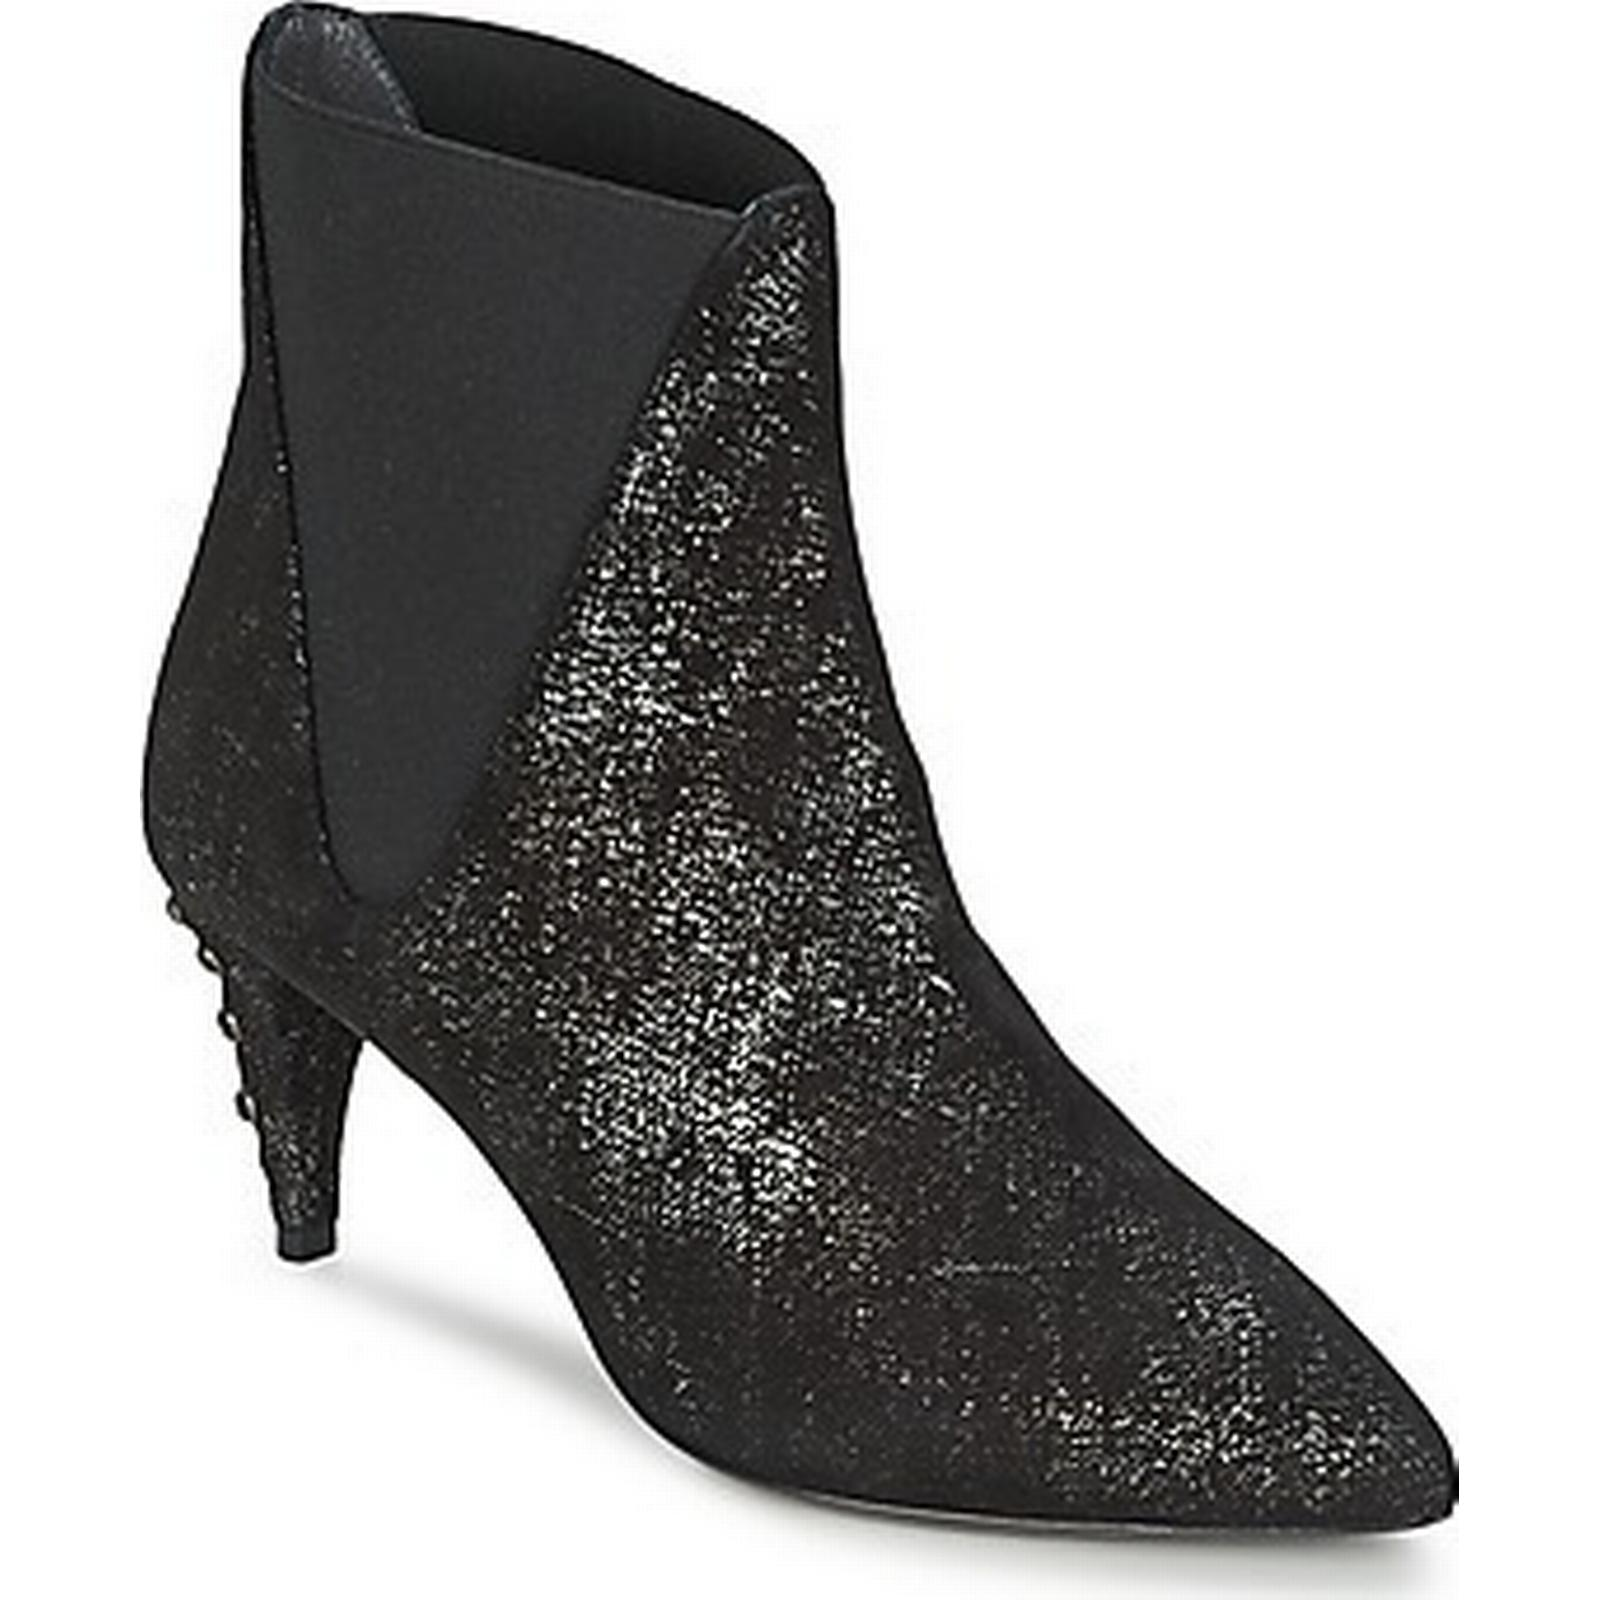 spartoo.co.uk st é phane kelian 7 elsa 7 kelian femmes et #  27; s faible bottines en noir c73d22